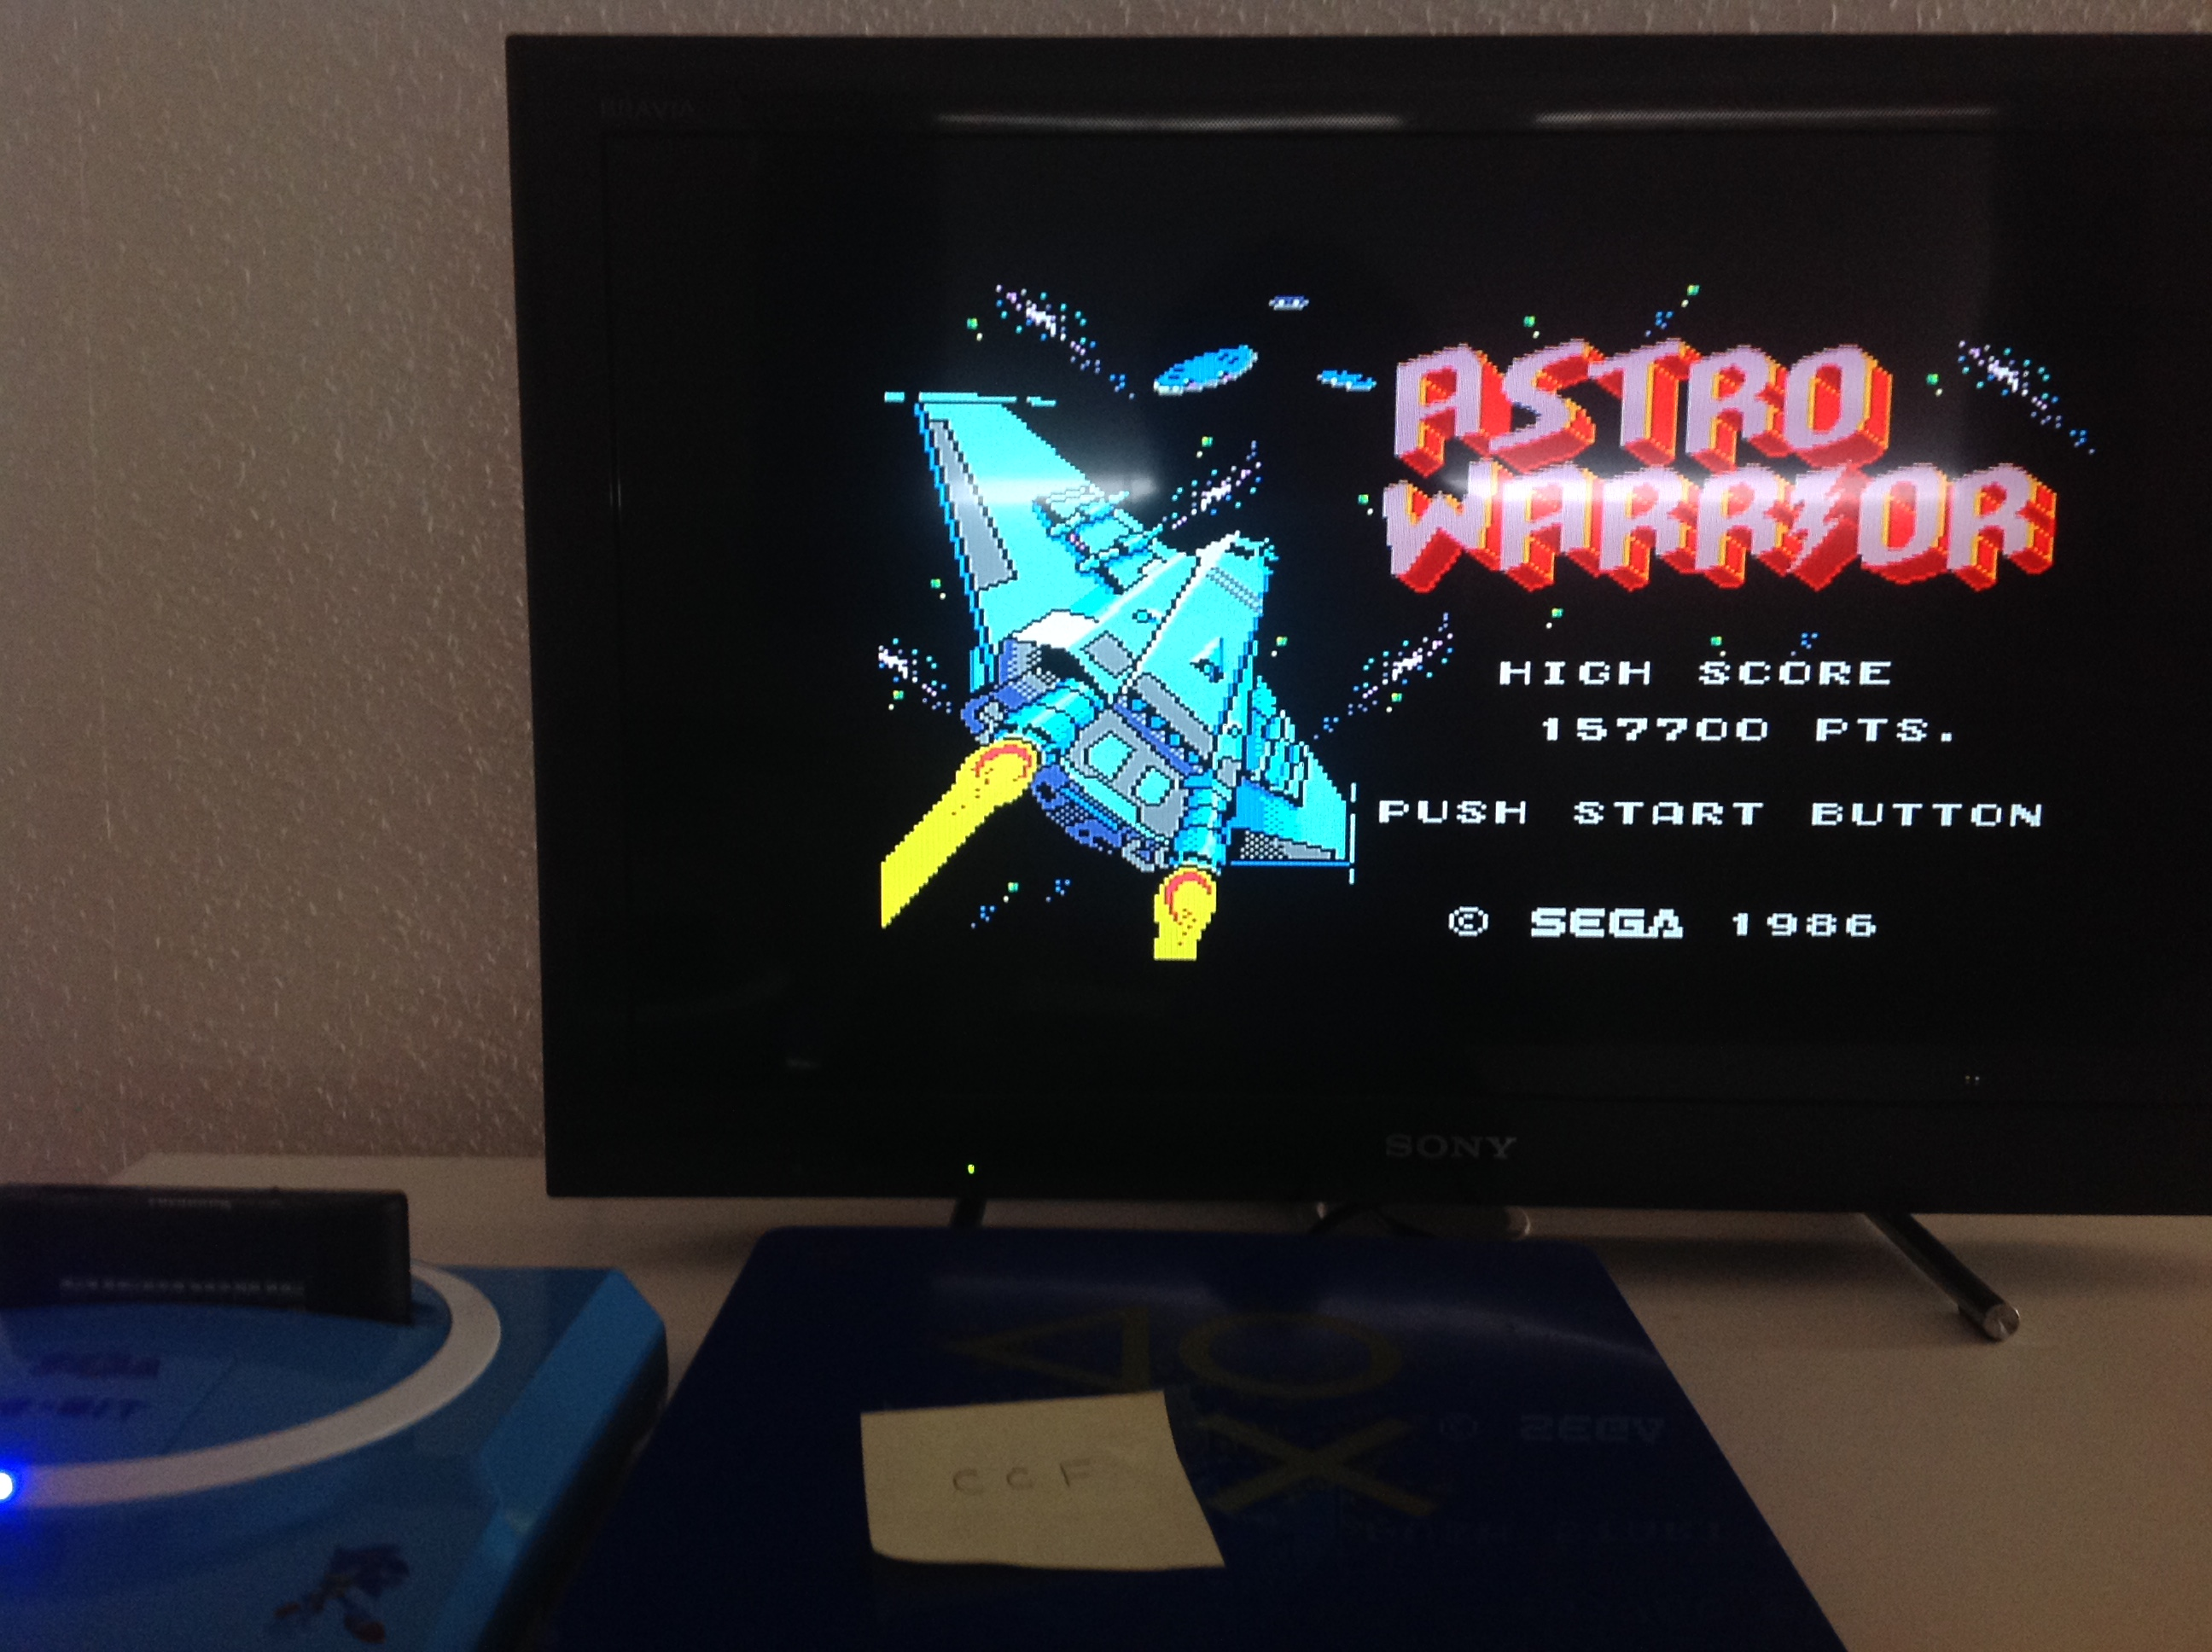 CoCoForest: Astro Warrior (Sega Master System) 157,700 points on 2018-07-24 04:38:53